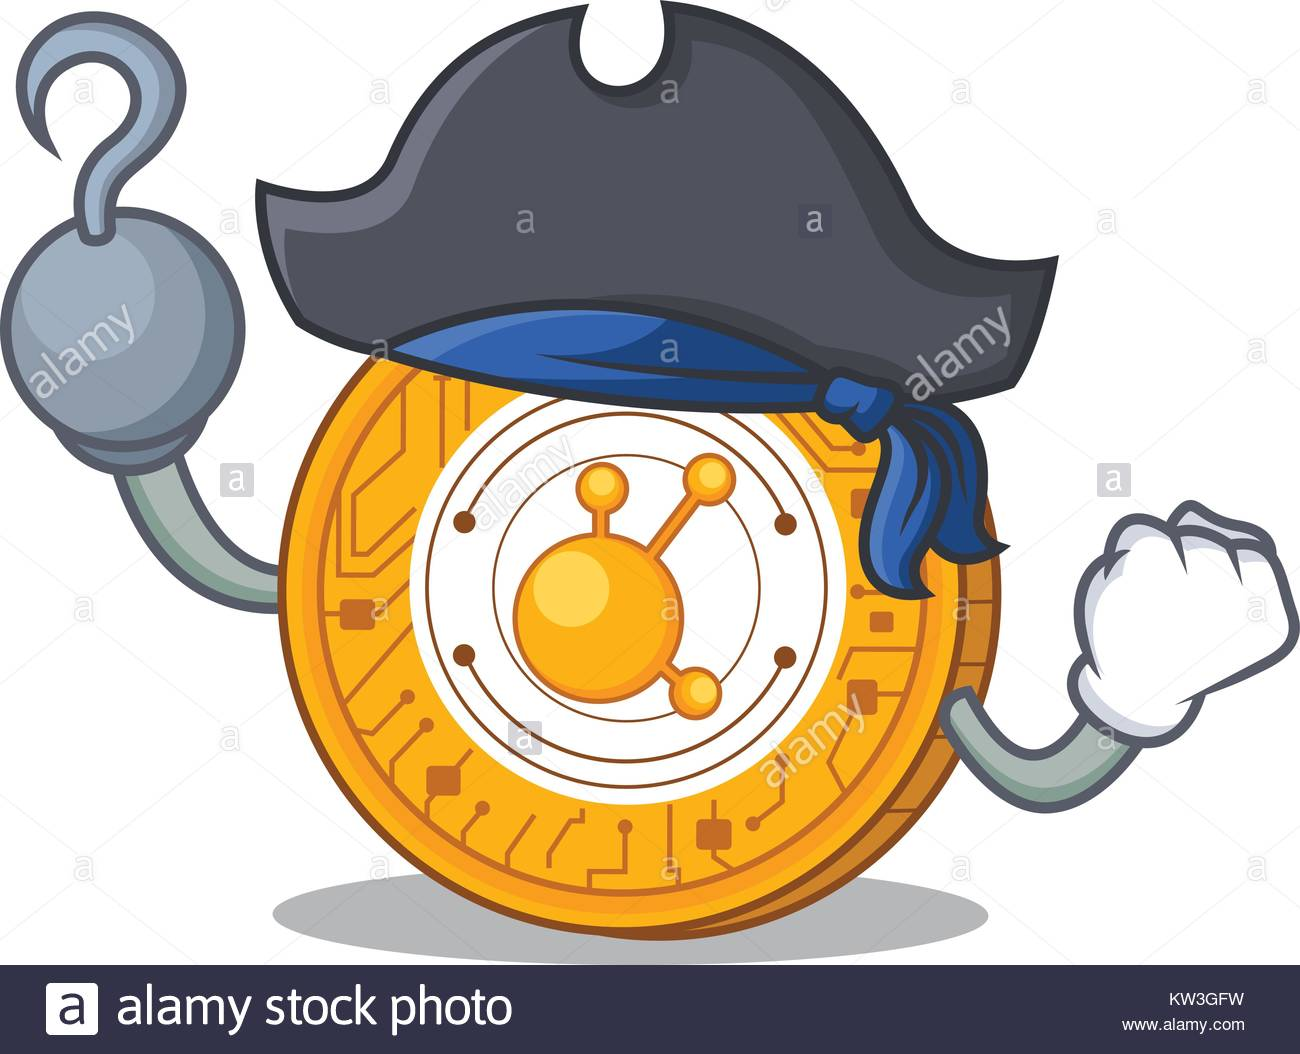 Pirate BitConnect coin character cartoon - Stock Image